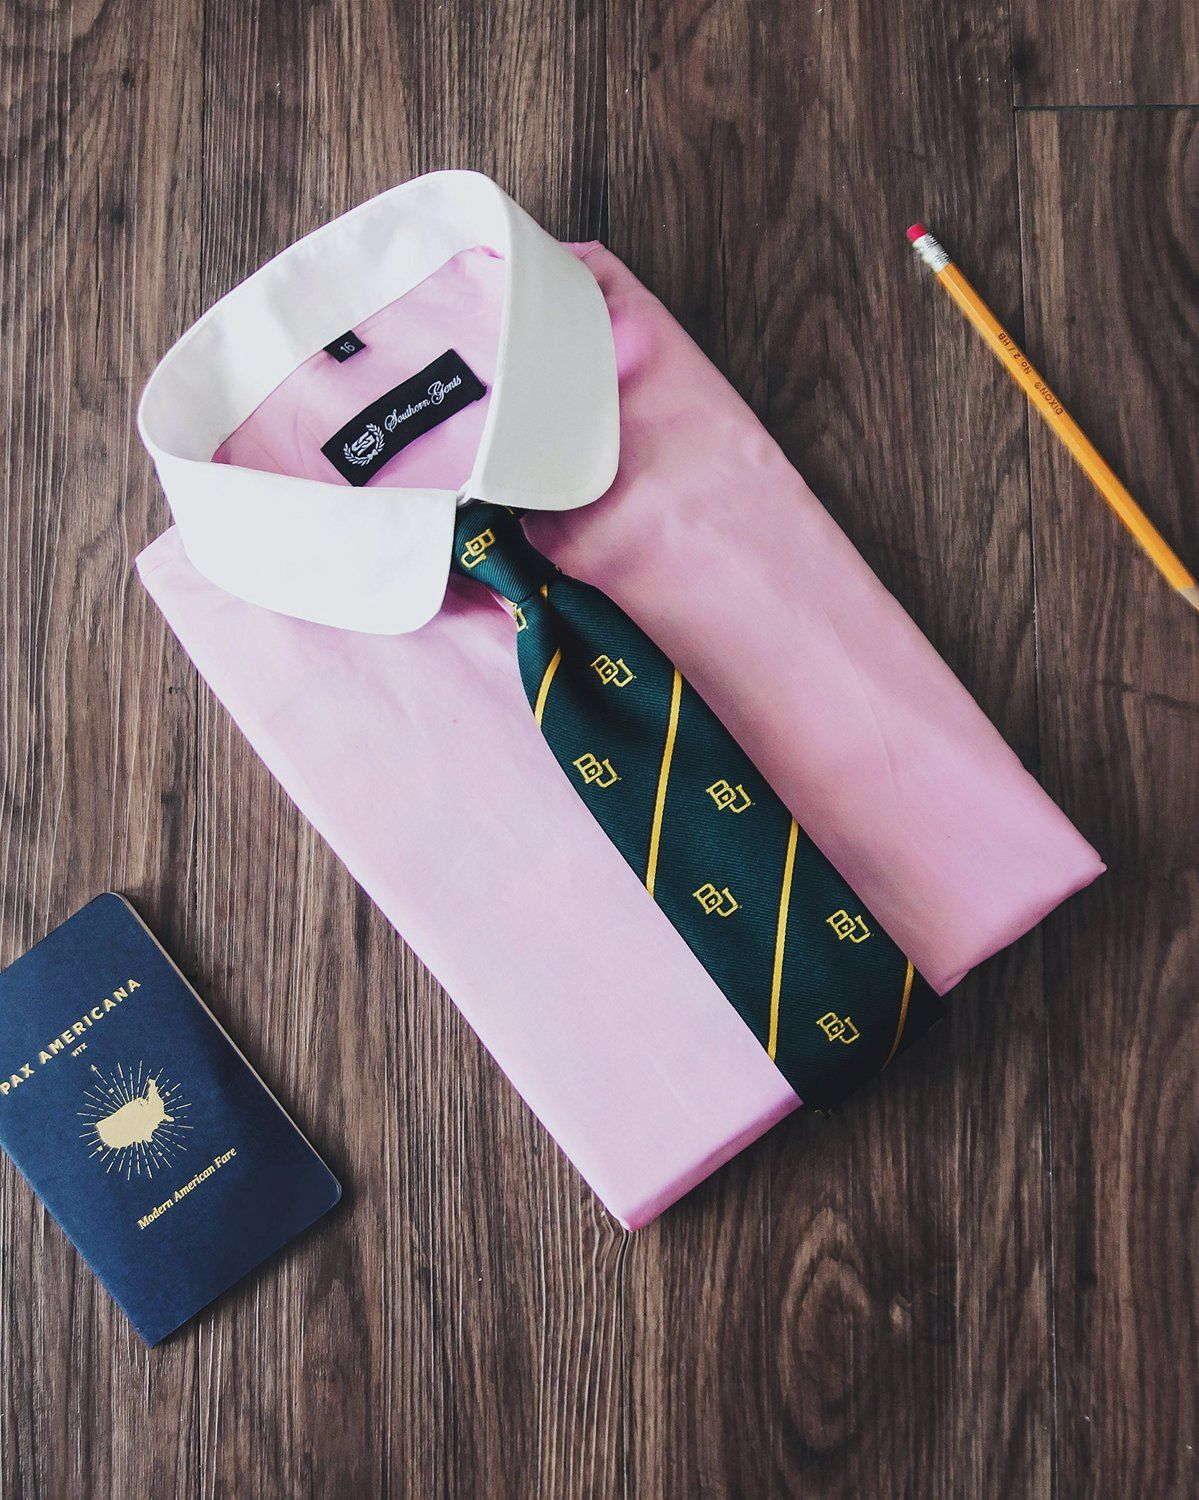 Club style dress shirts